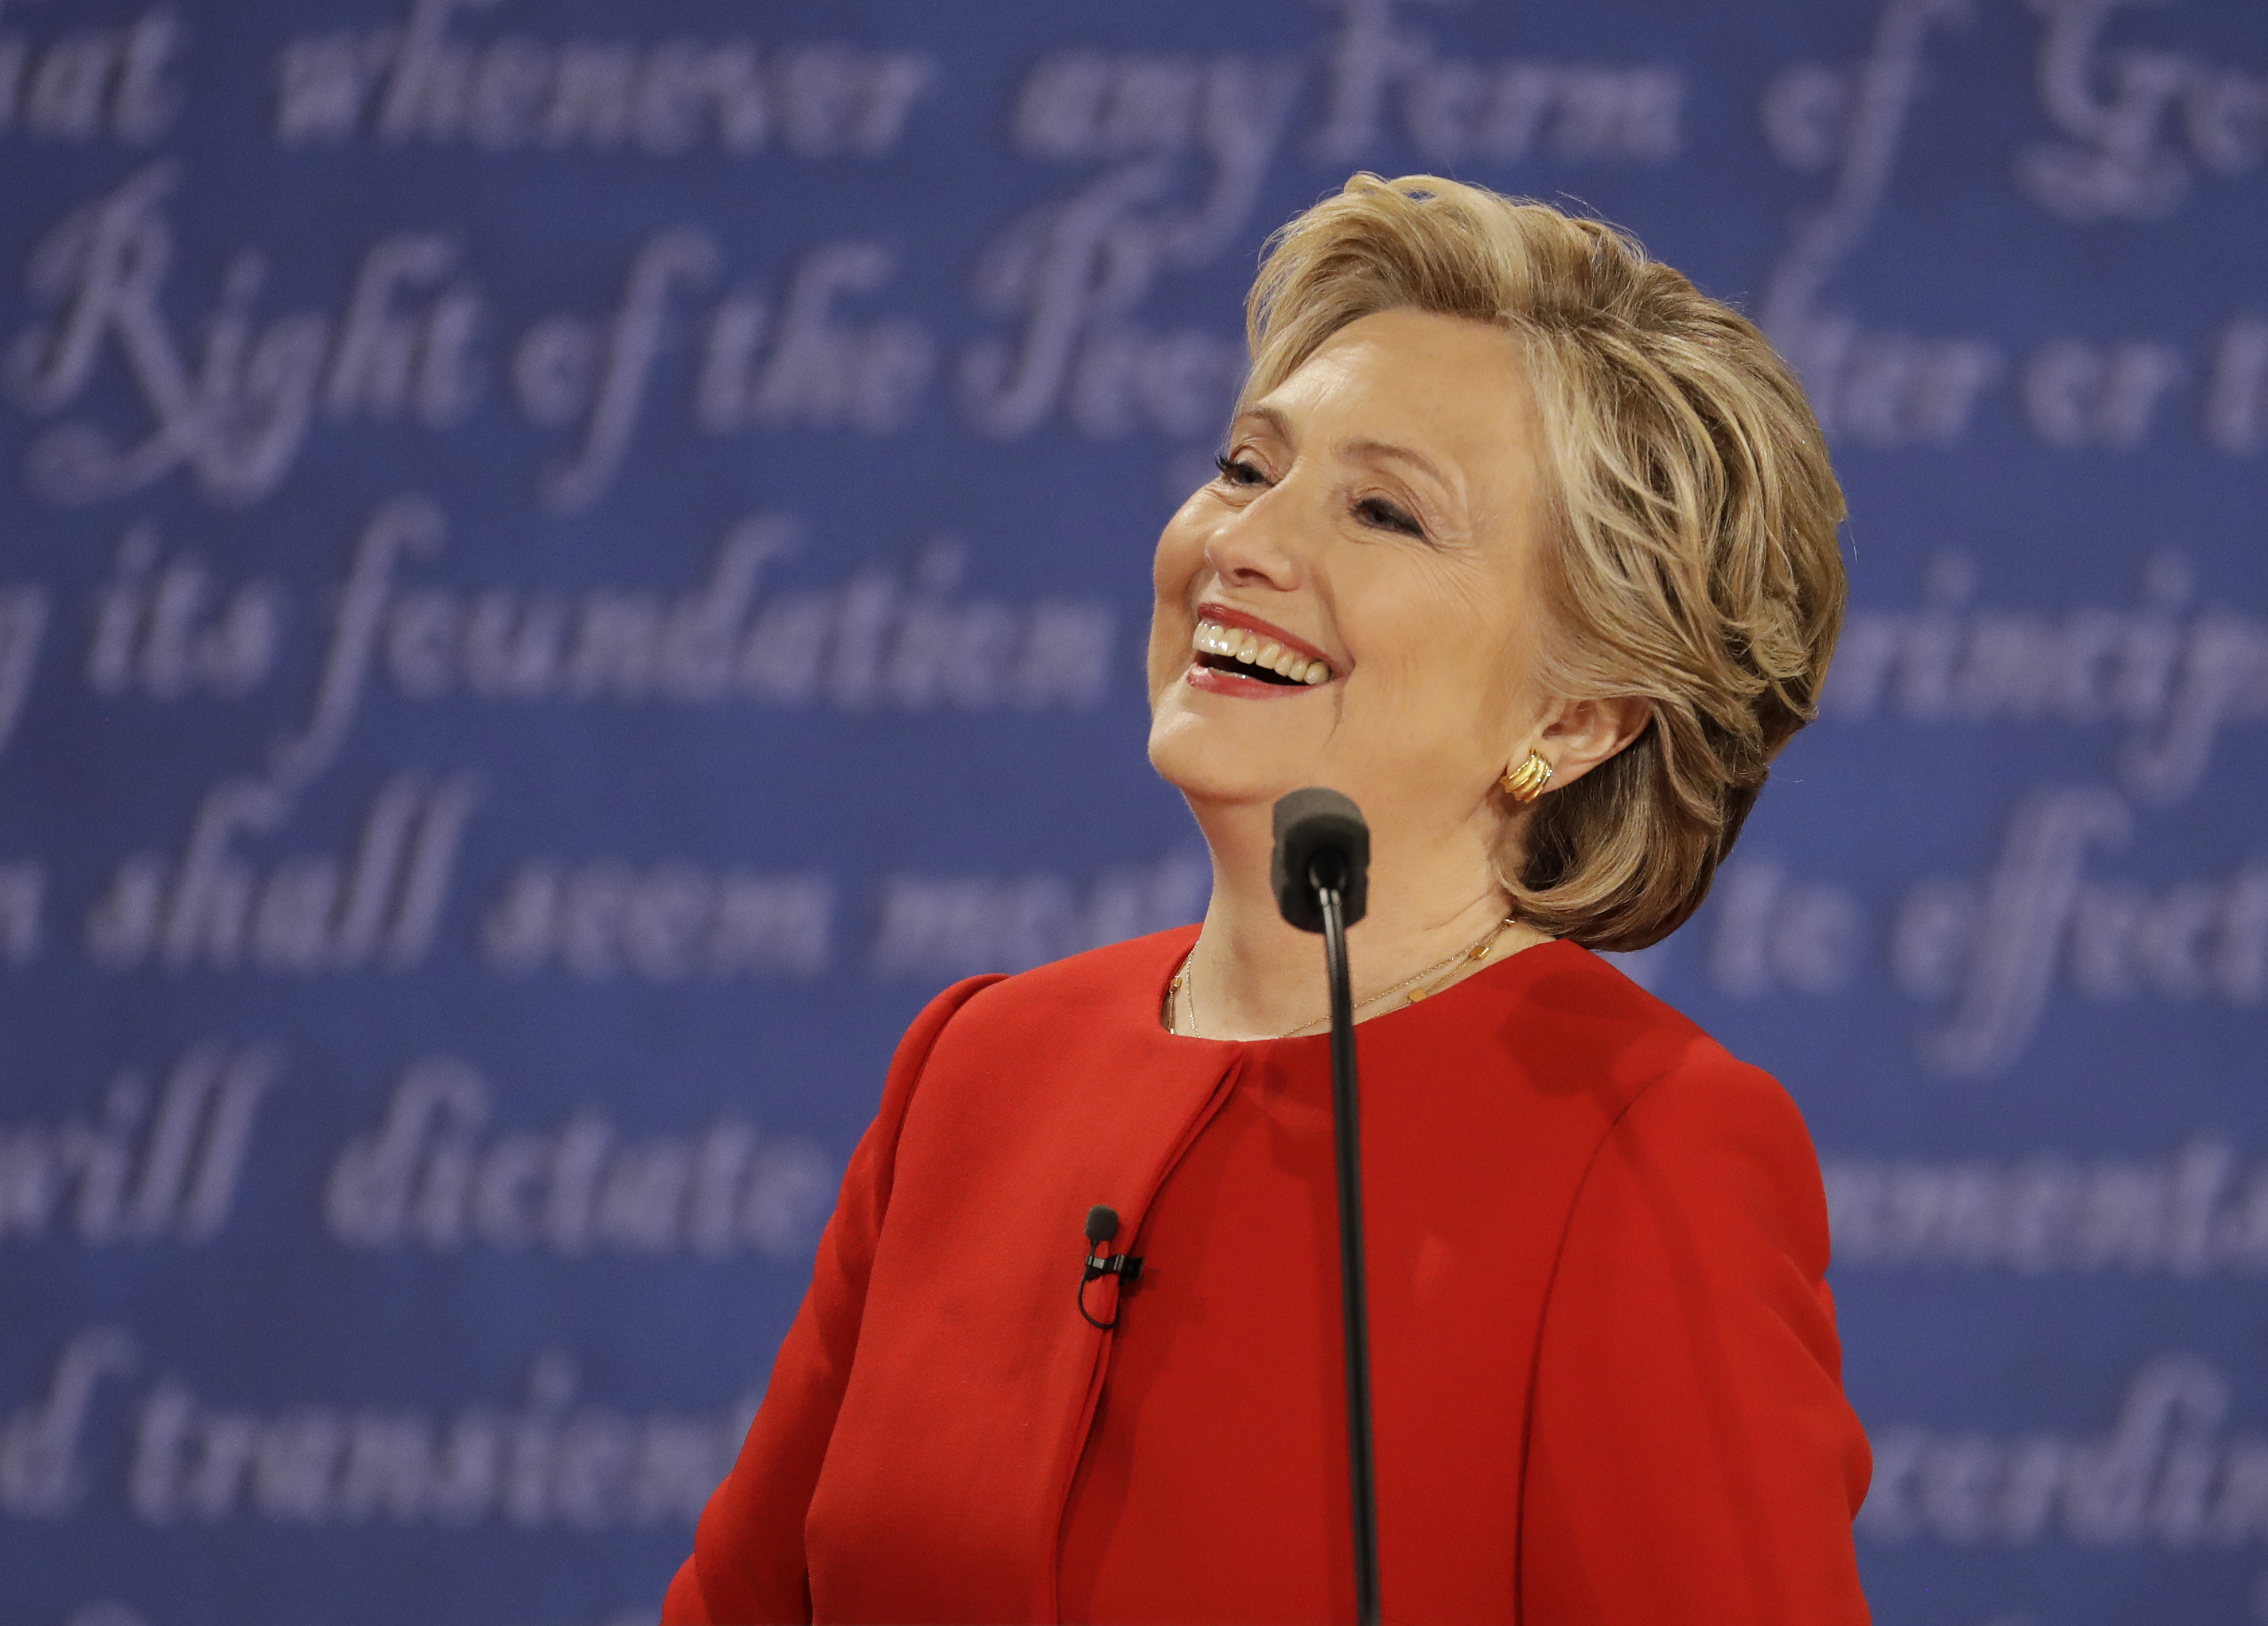 Democratic presidential nominee Hillary Clinton laughs to Republican presidential nominee Donald Trump during the presidential debate at Hofstra University in Hempstead, N.Y., Monday, Sept. 26, 2016. (Julio Cortez, Associated Press)